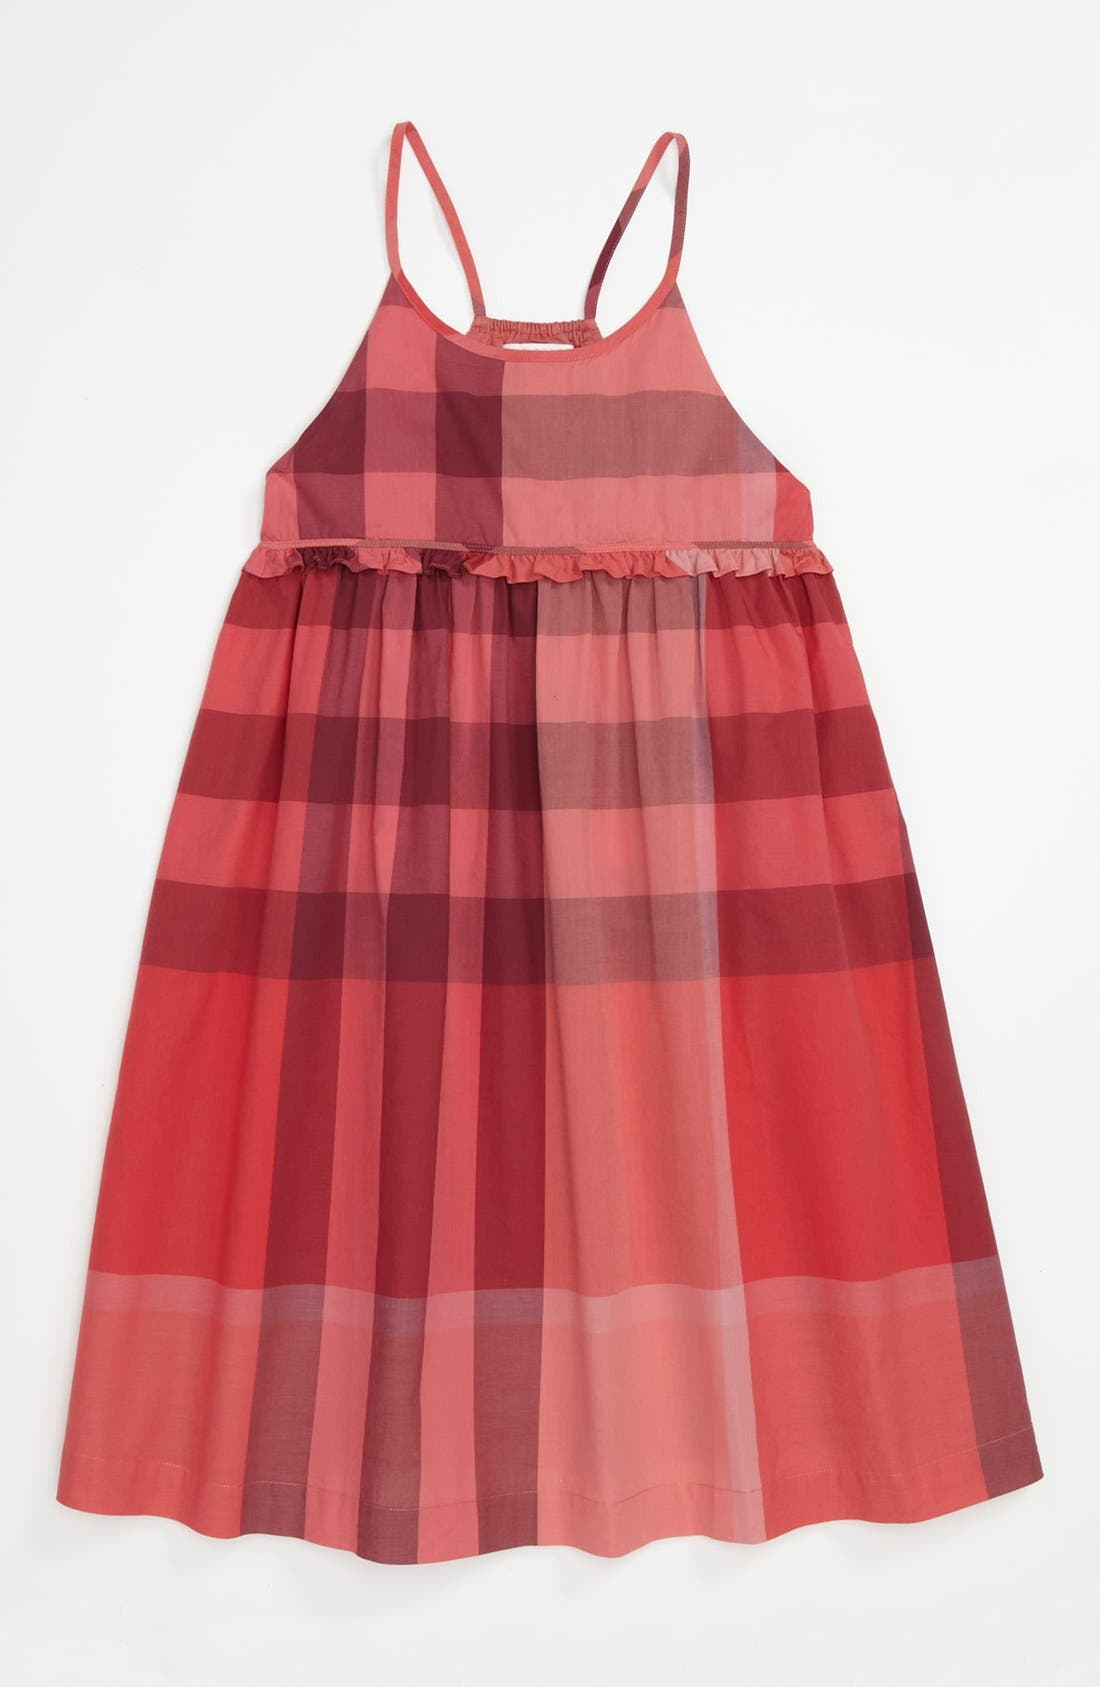 Main Image - Burberry 'Erica' Dress (Little Girls & Big Girls)